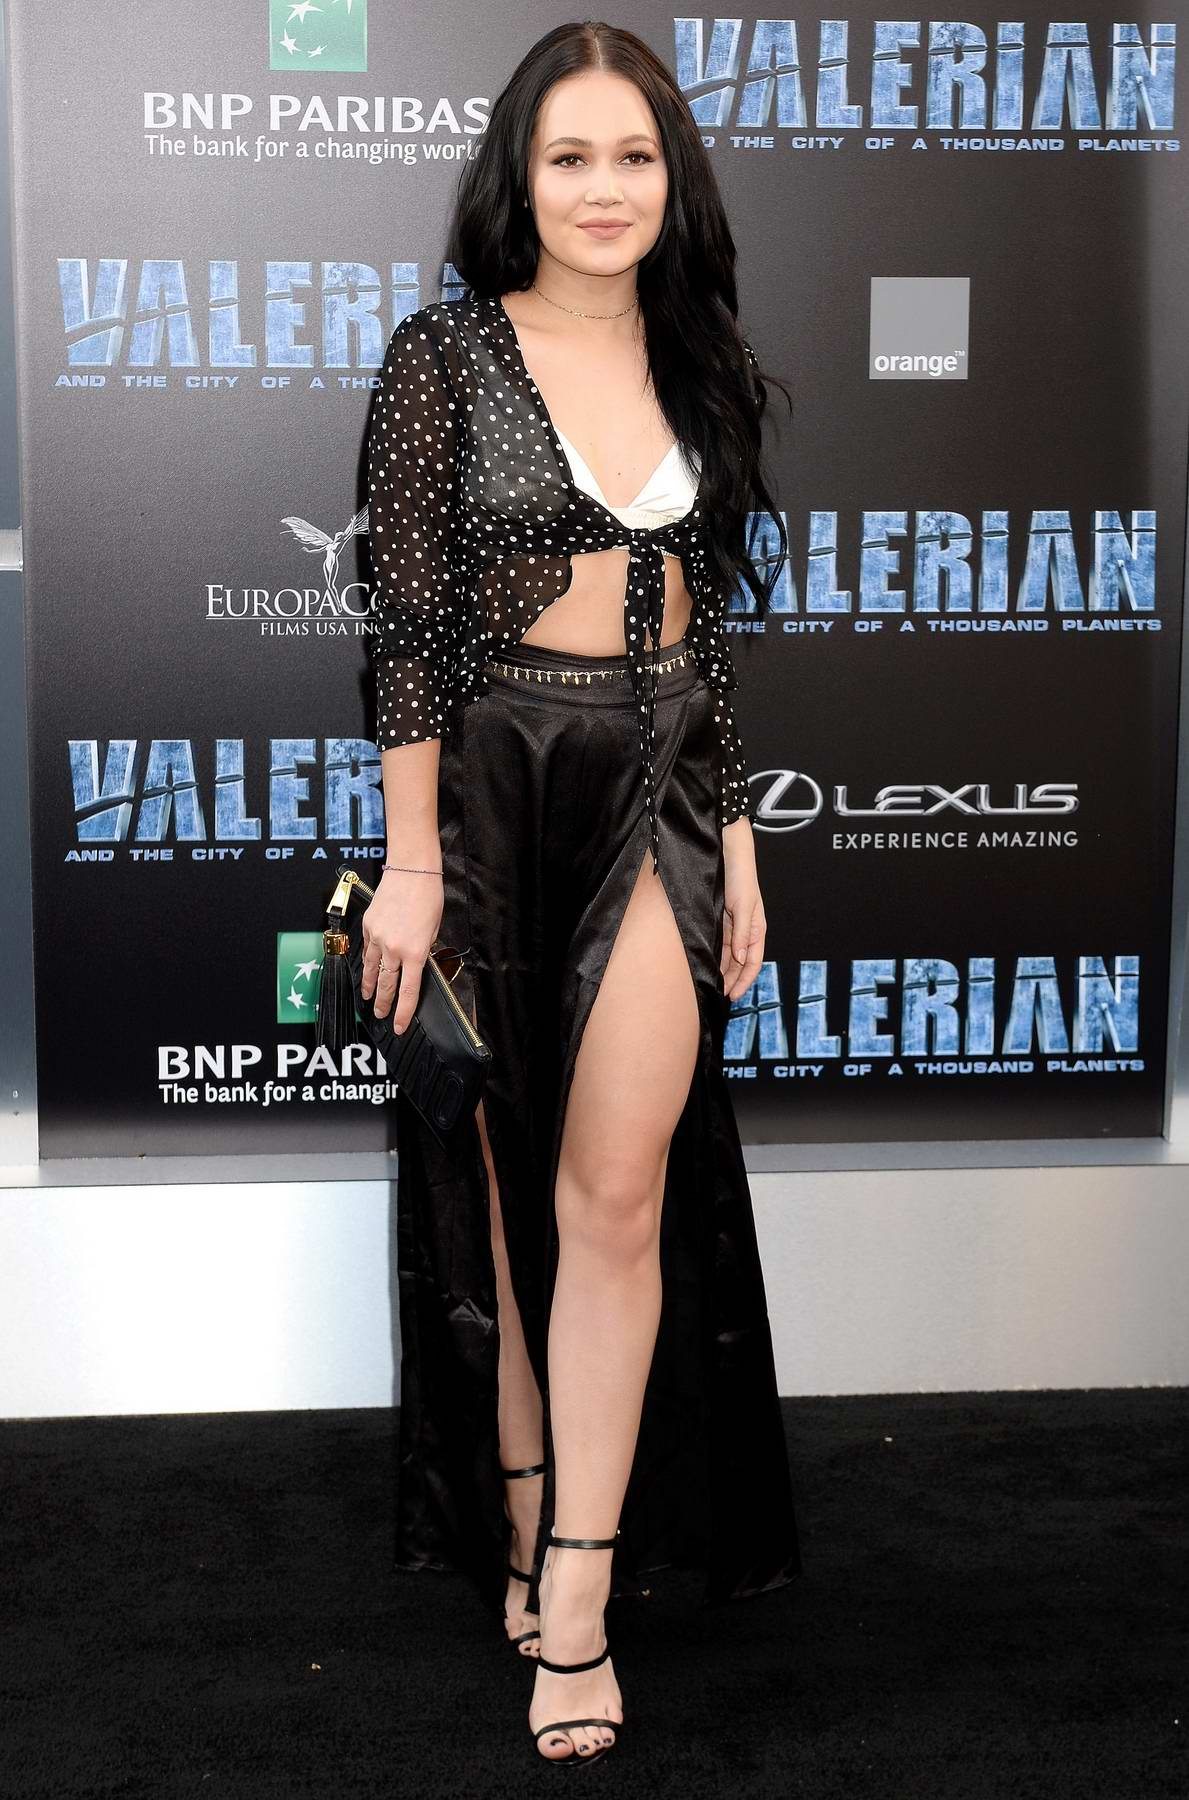 Kelli Berglund at Valerian and the City of a Thousand Planets Premiere in Hollywood, Los Angeles